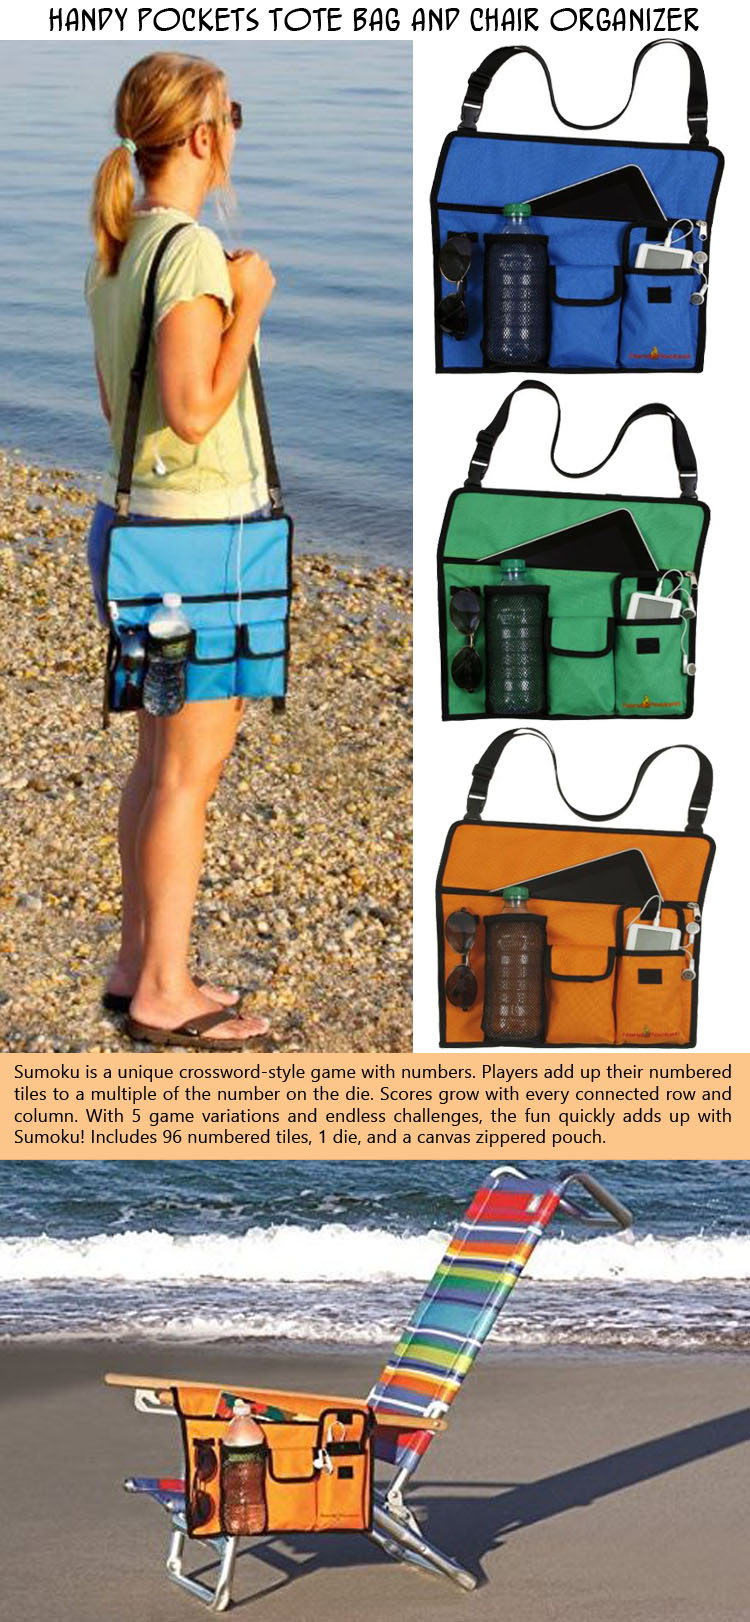 The handy pocket tote bag